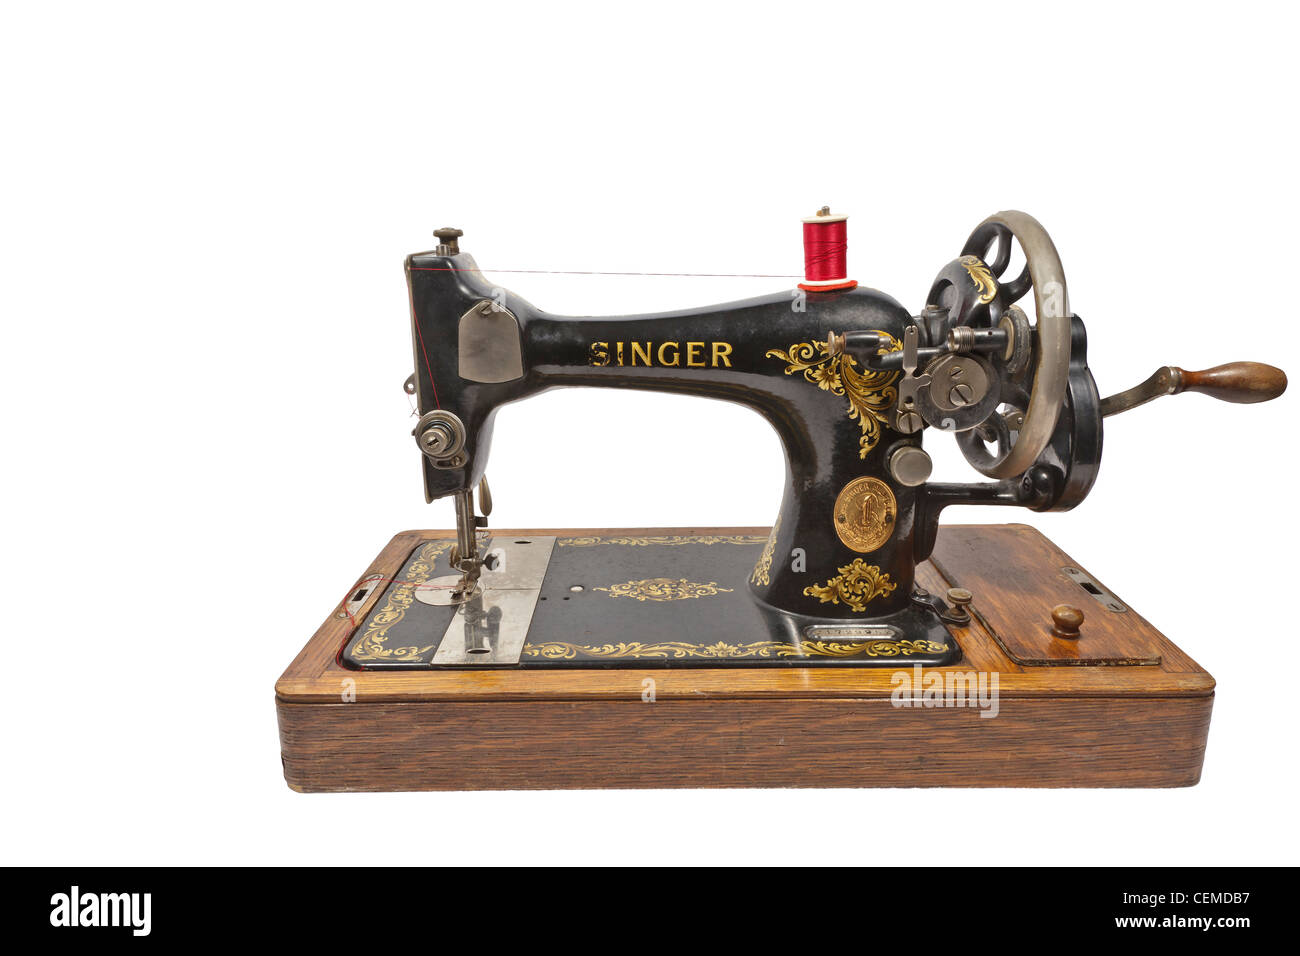 old fashioned  hand cranked sewing machine - Stock Image